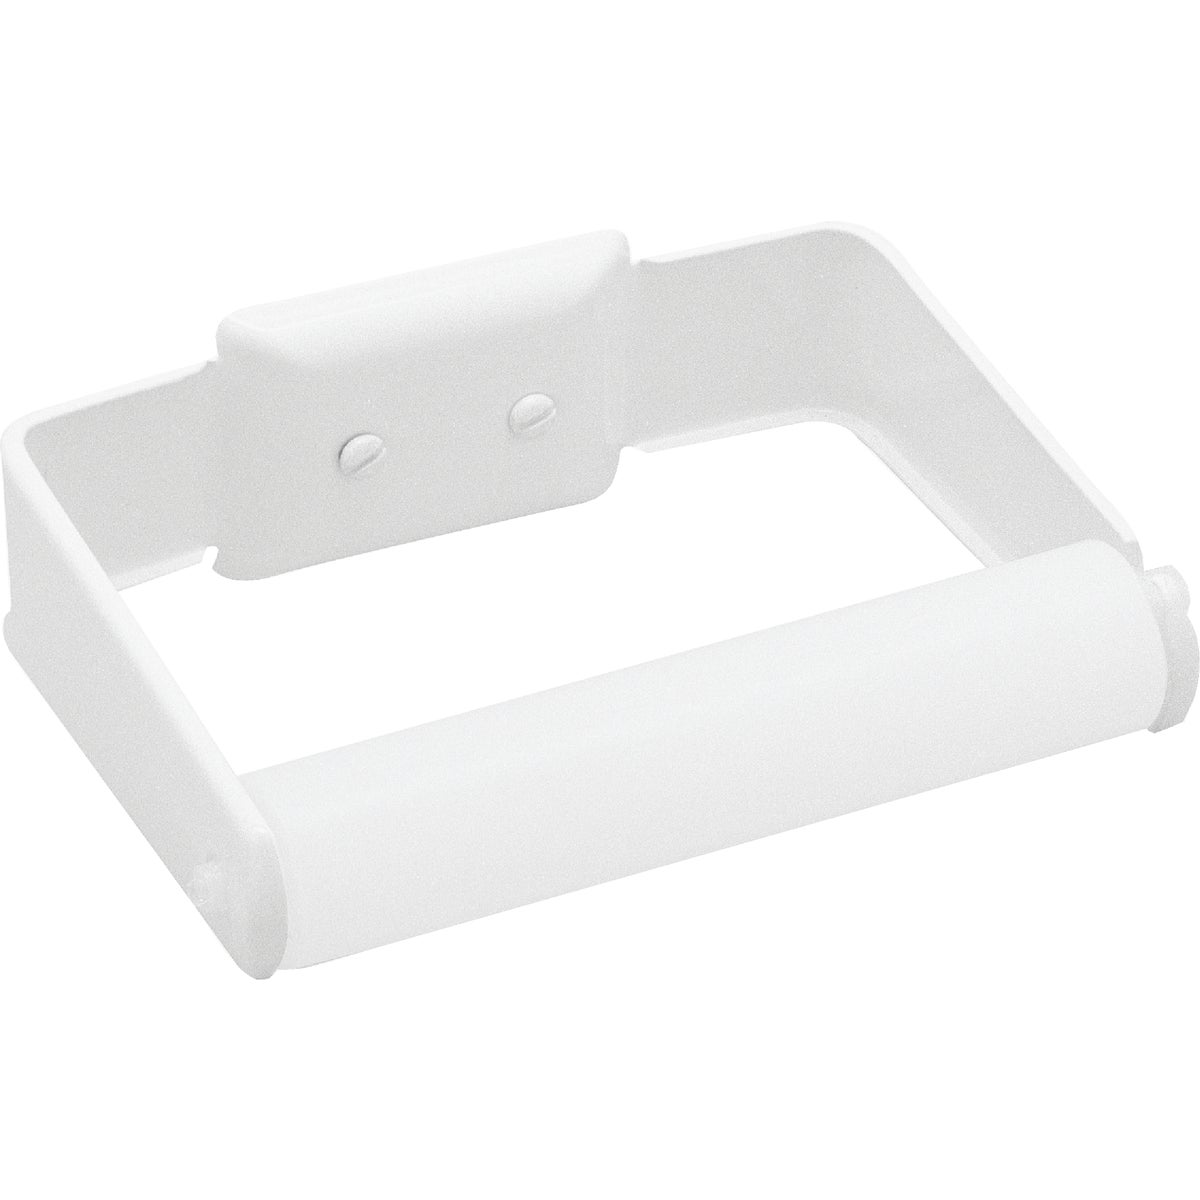 WHT PAPER HOLDER - 48890 by Decko Bath